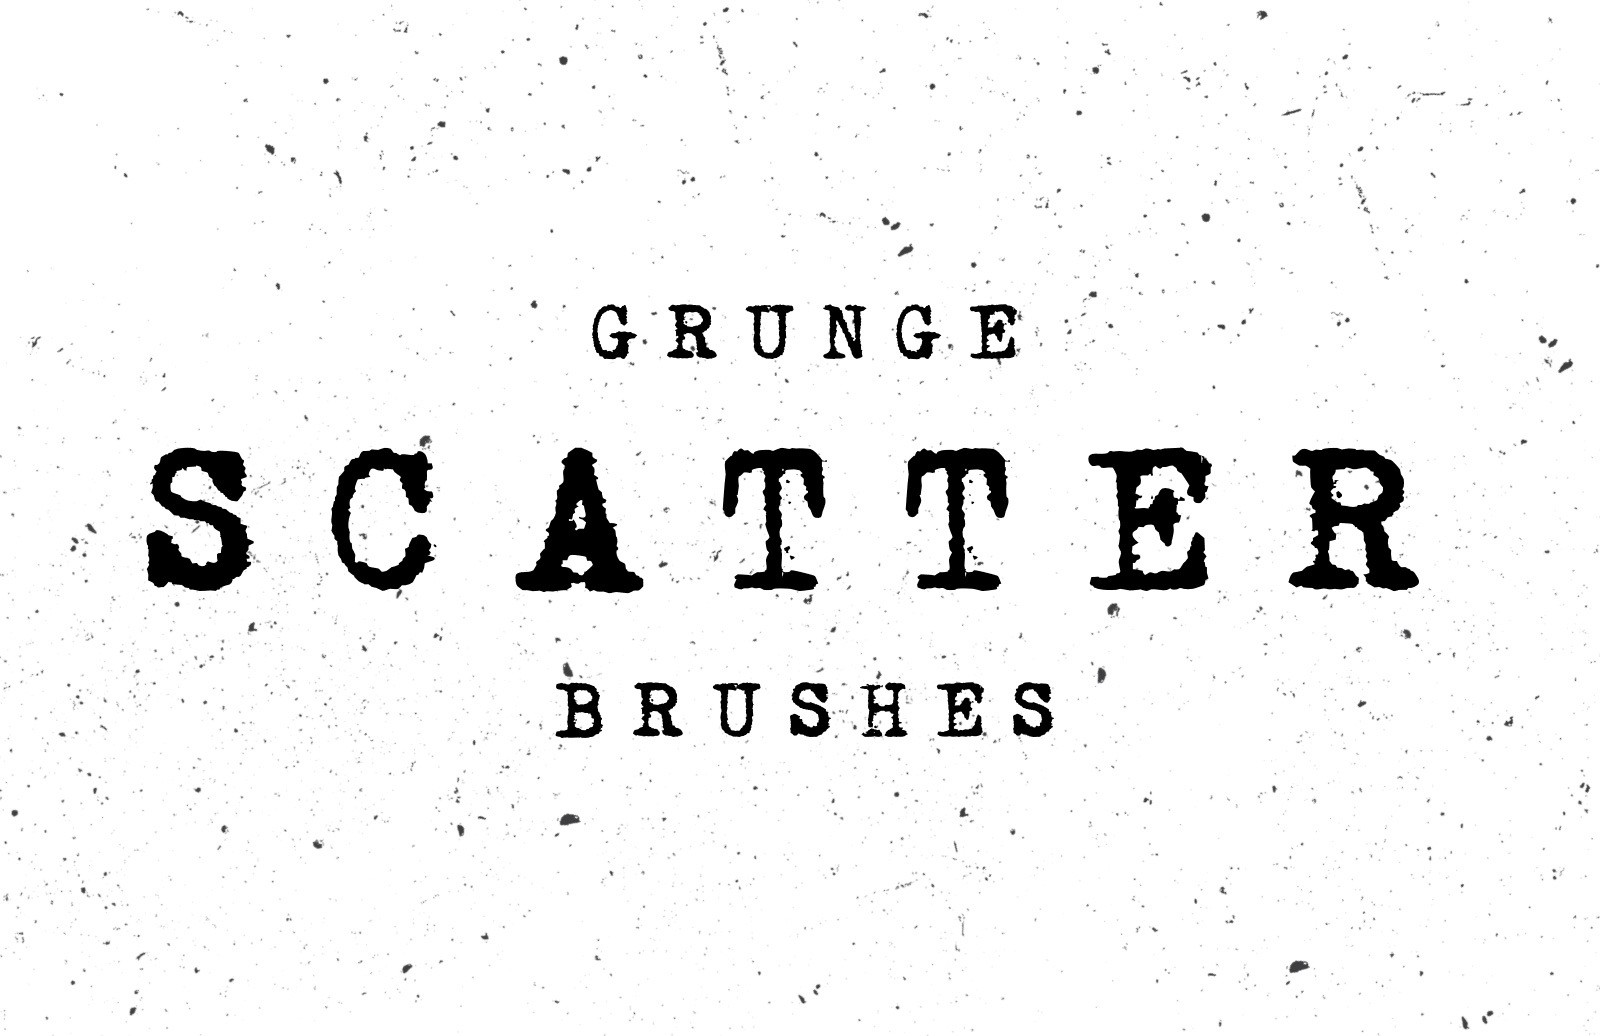 Grunge Photoshop Scatter Brushes